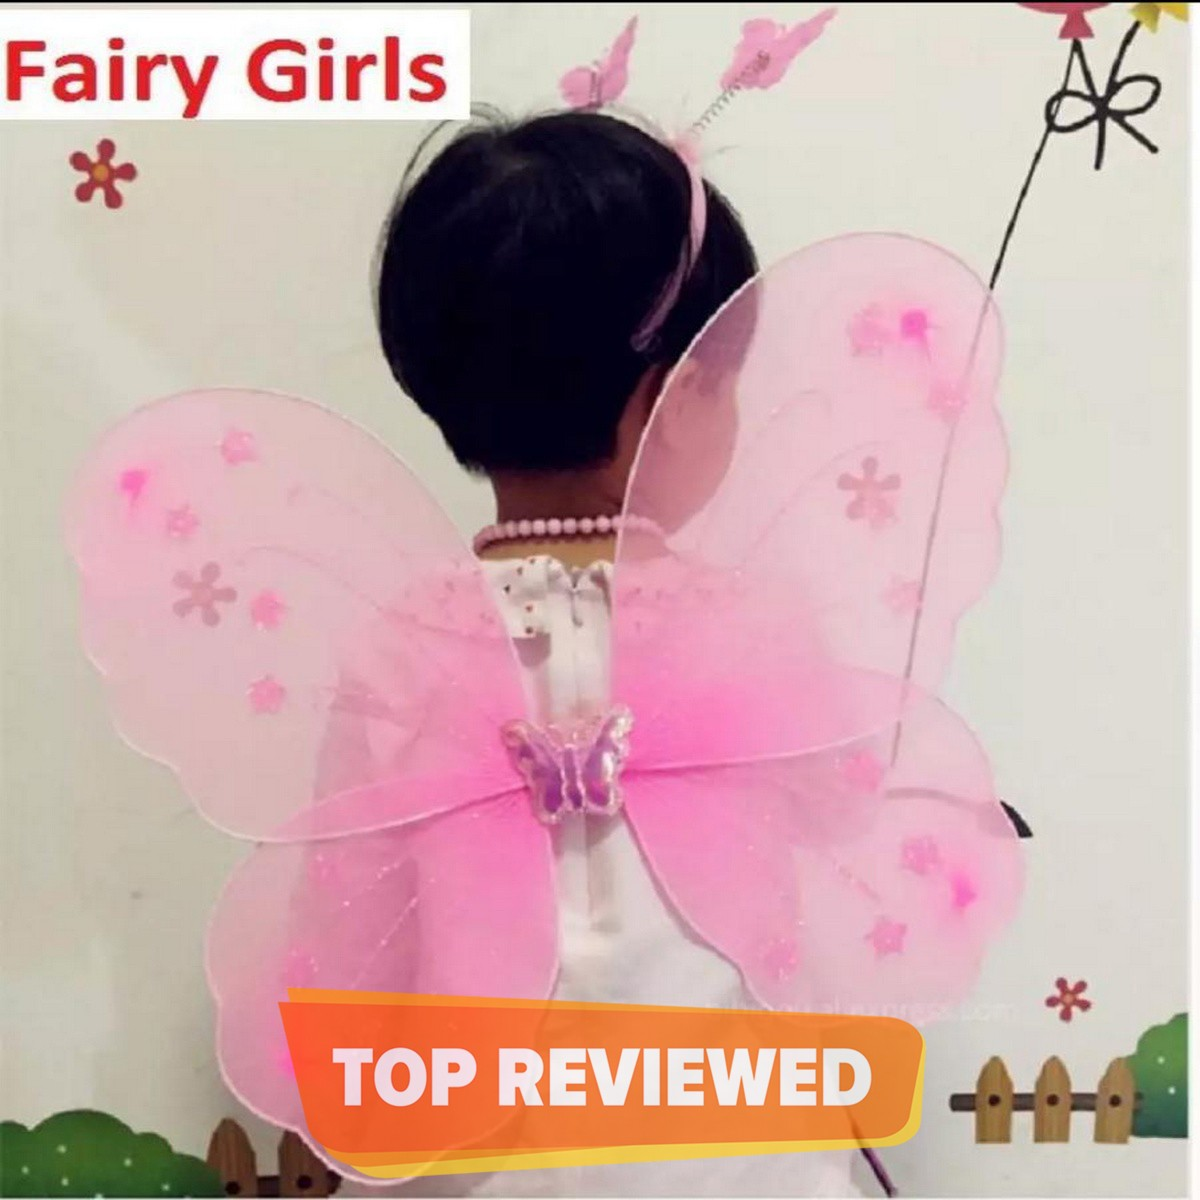 3pcs/Set Butterfly Wing Party Angel Wings Cosplay costume for girls kids princess hairband fairy wants dress Princess Girl Fairy, School Party Dress For Daughter